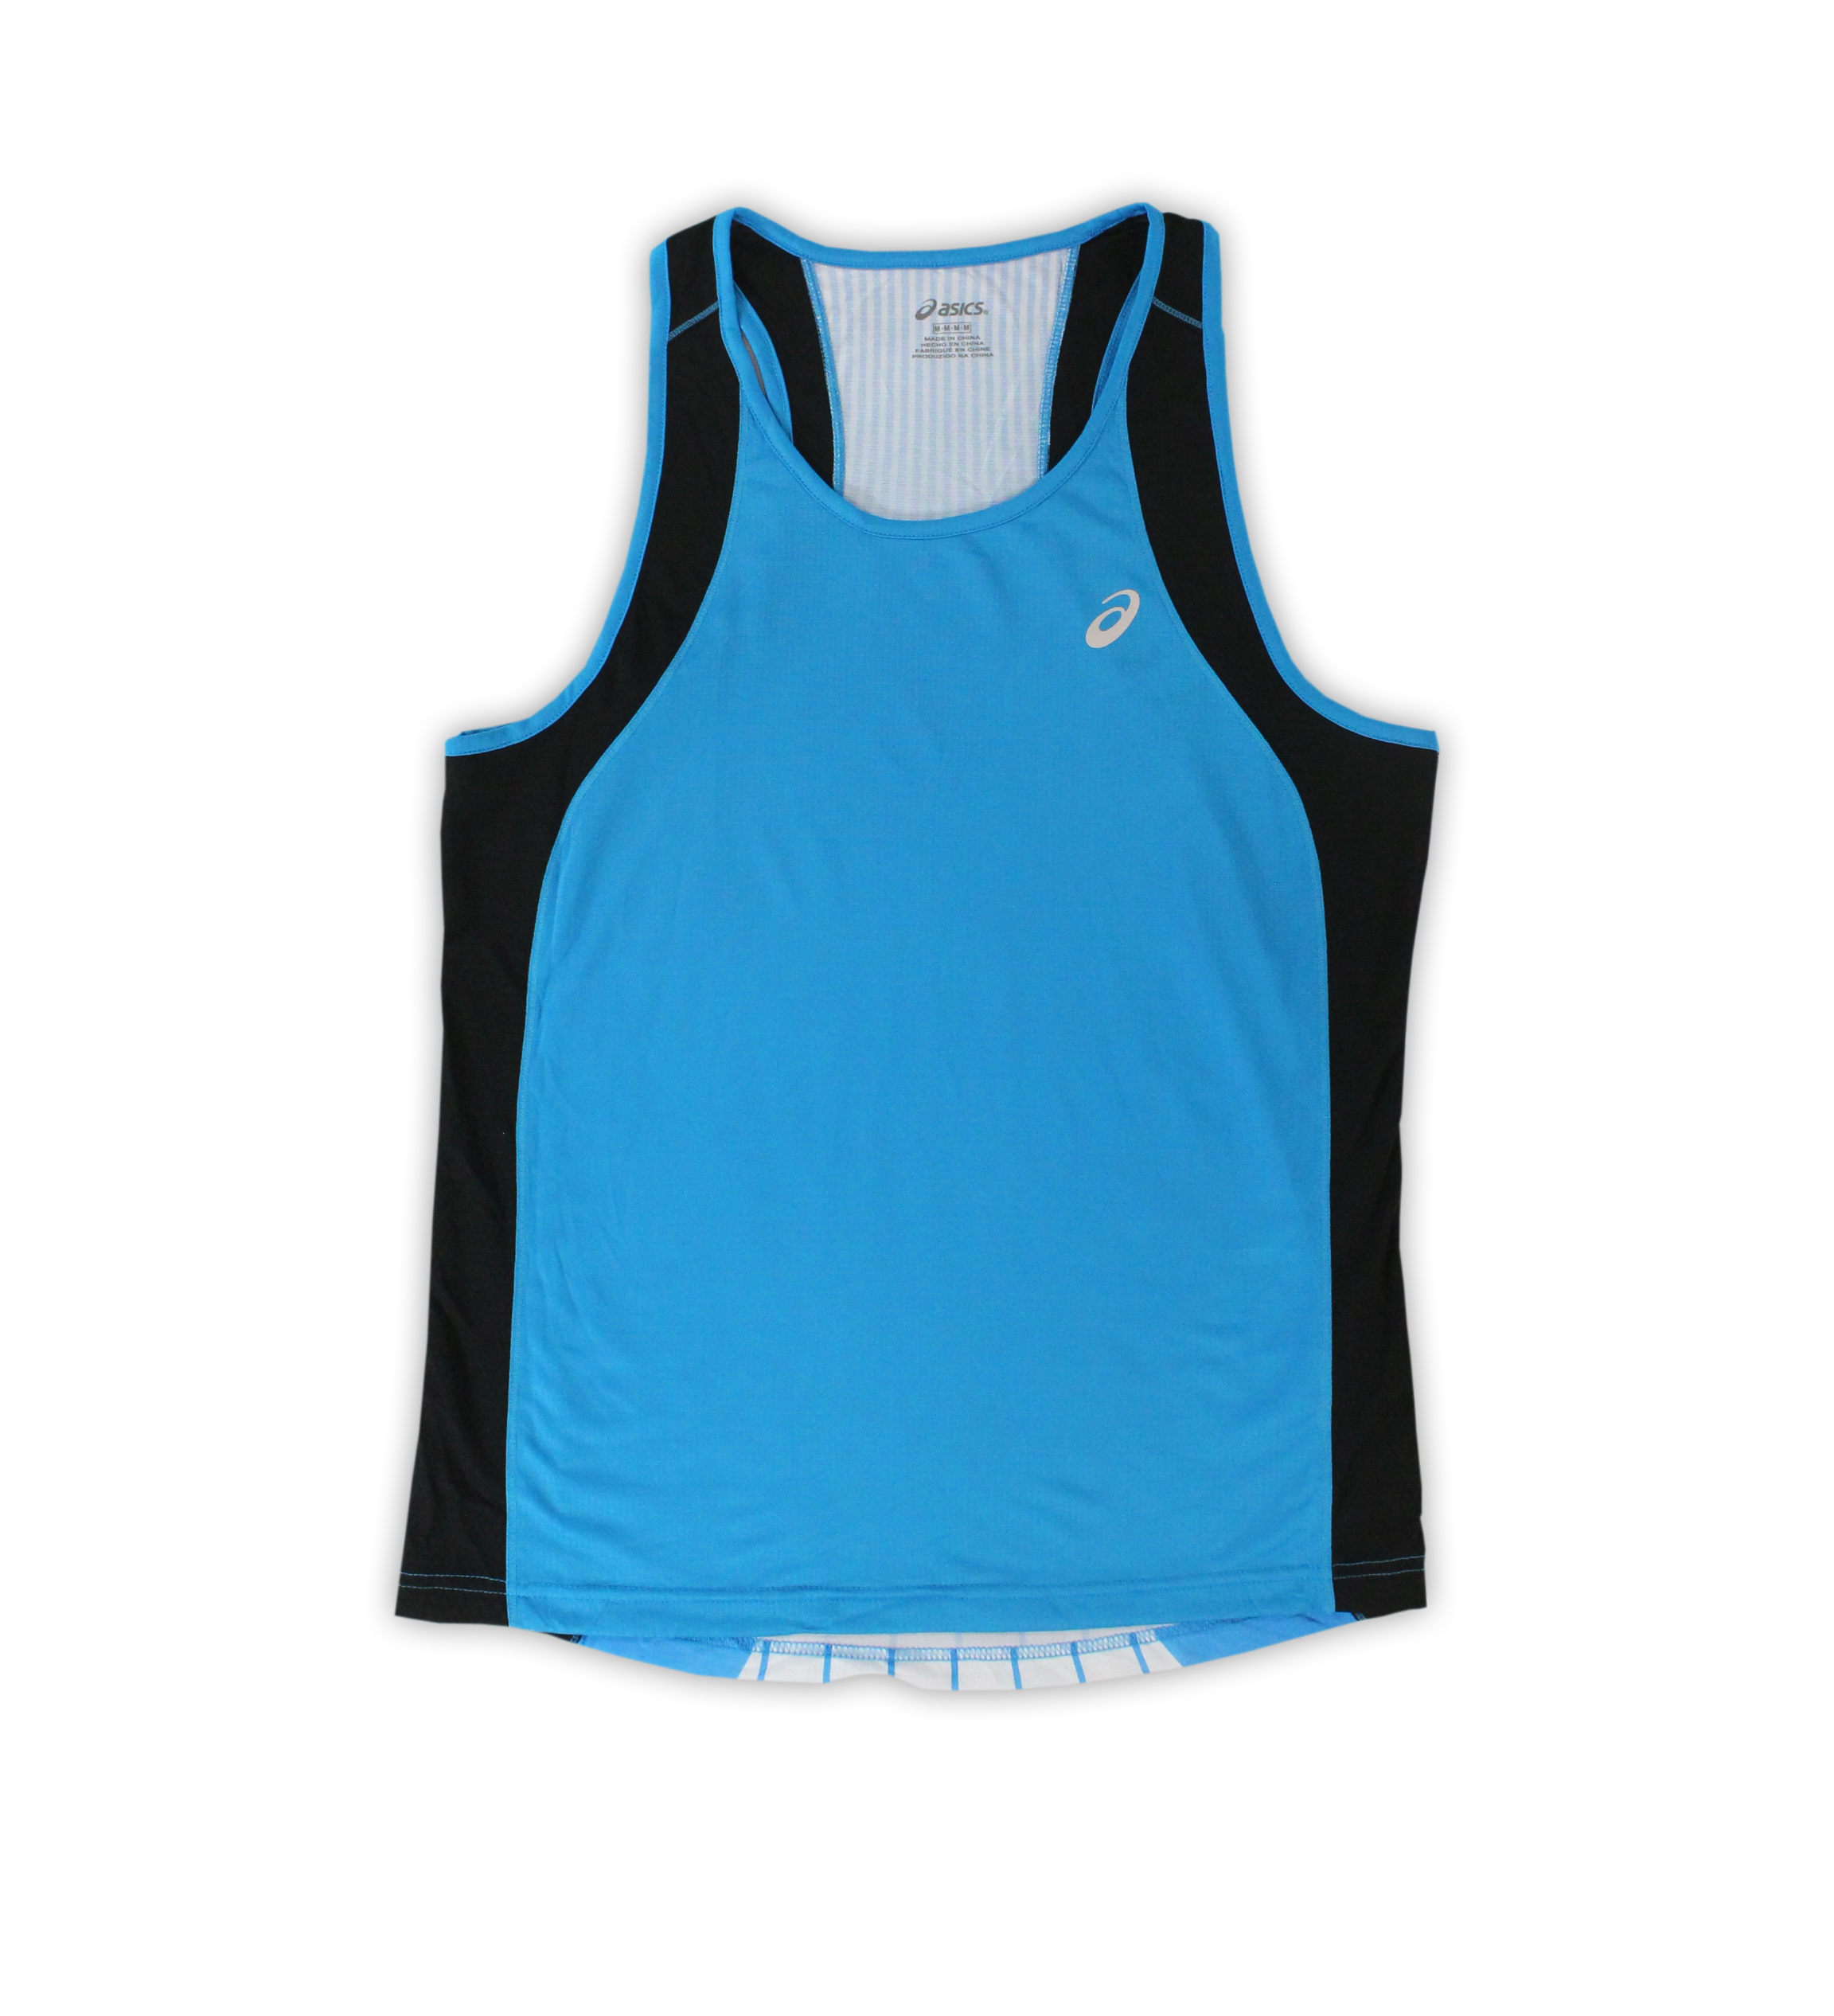 Asics-NEW-Two-Tone-Mens-Performance-Muscle-Active-Tank-Top-T-Shirt-38